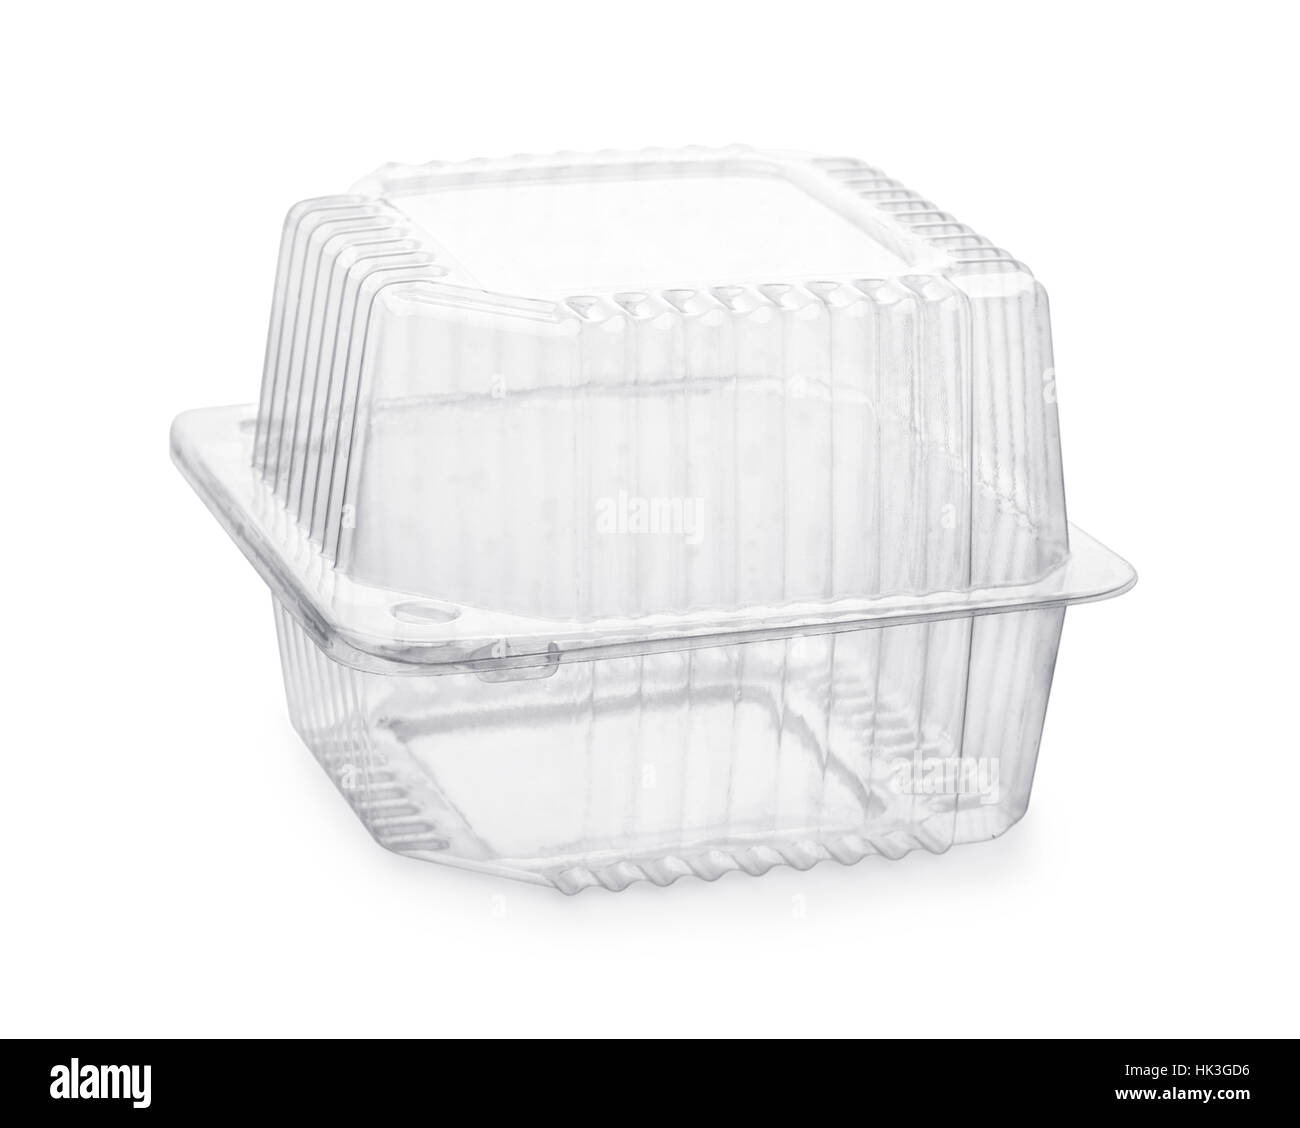 Closed transparent plastic food packaging box isolated on white - Stock Image